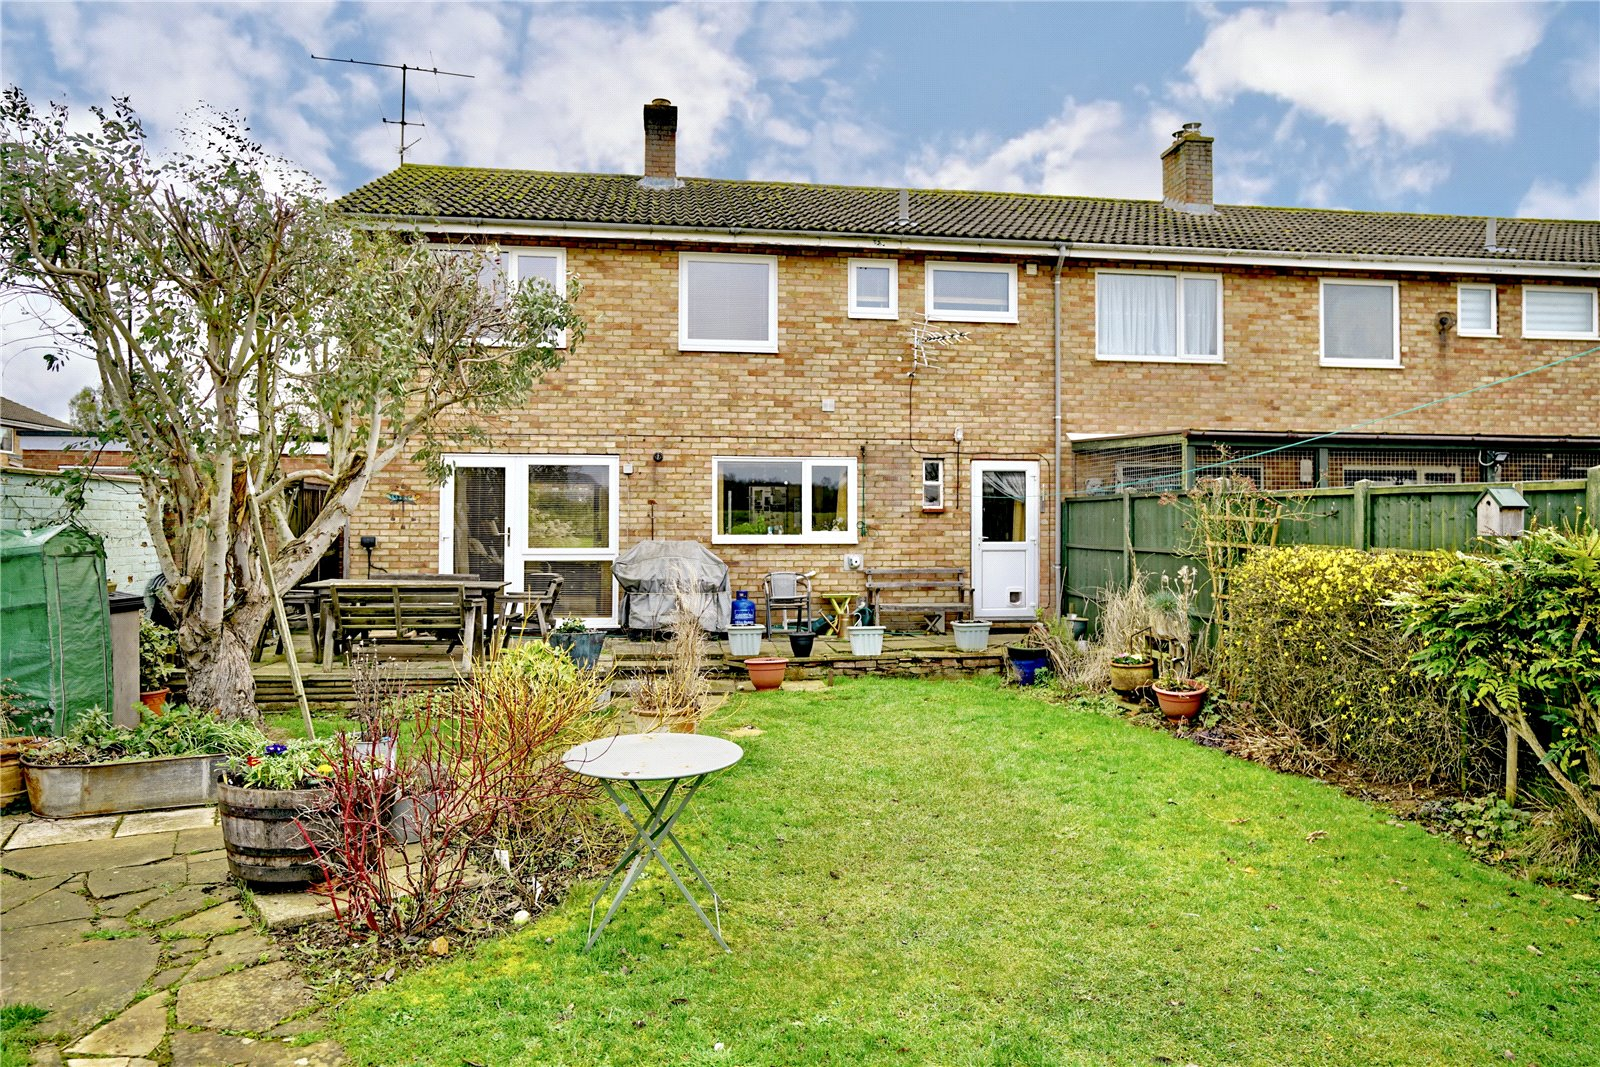 3 bed house for sale in Green Acres, Gamlingay 13